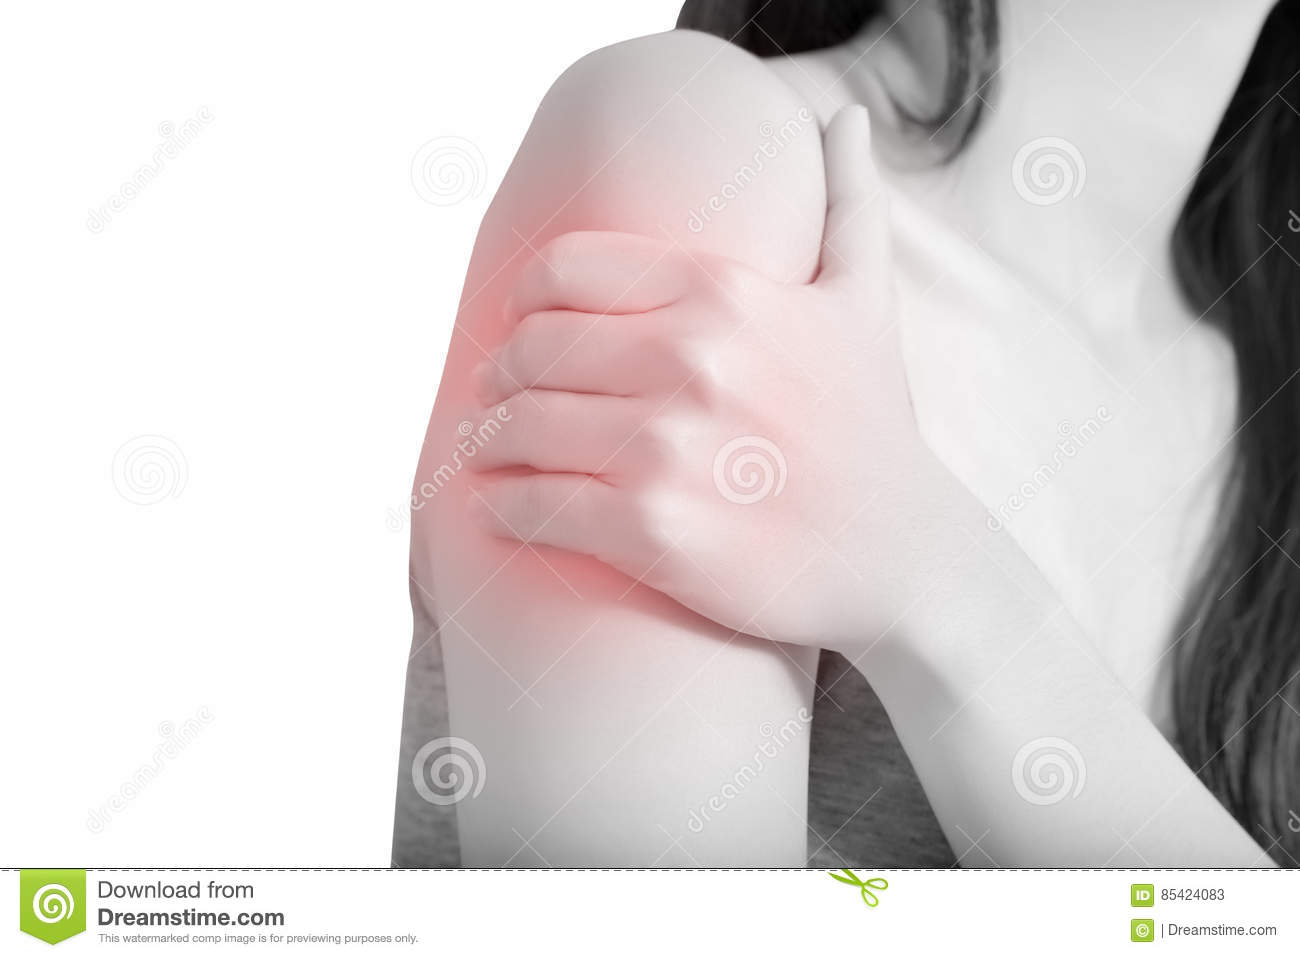 Painful arm in a woman isolated on white background. Clipping path on white background.